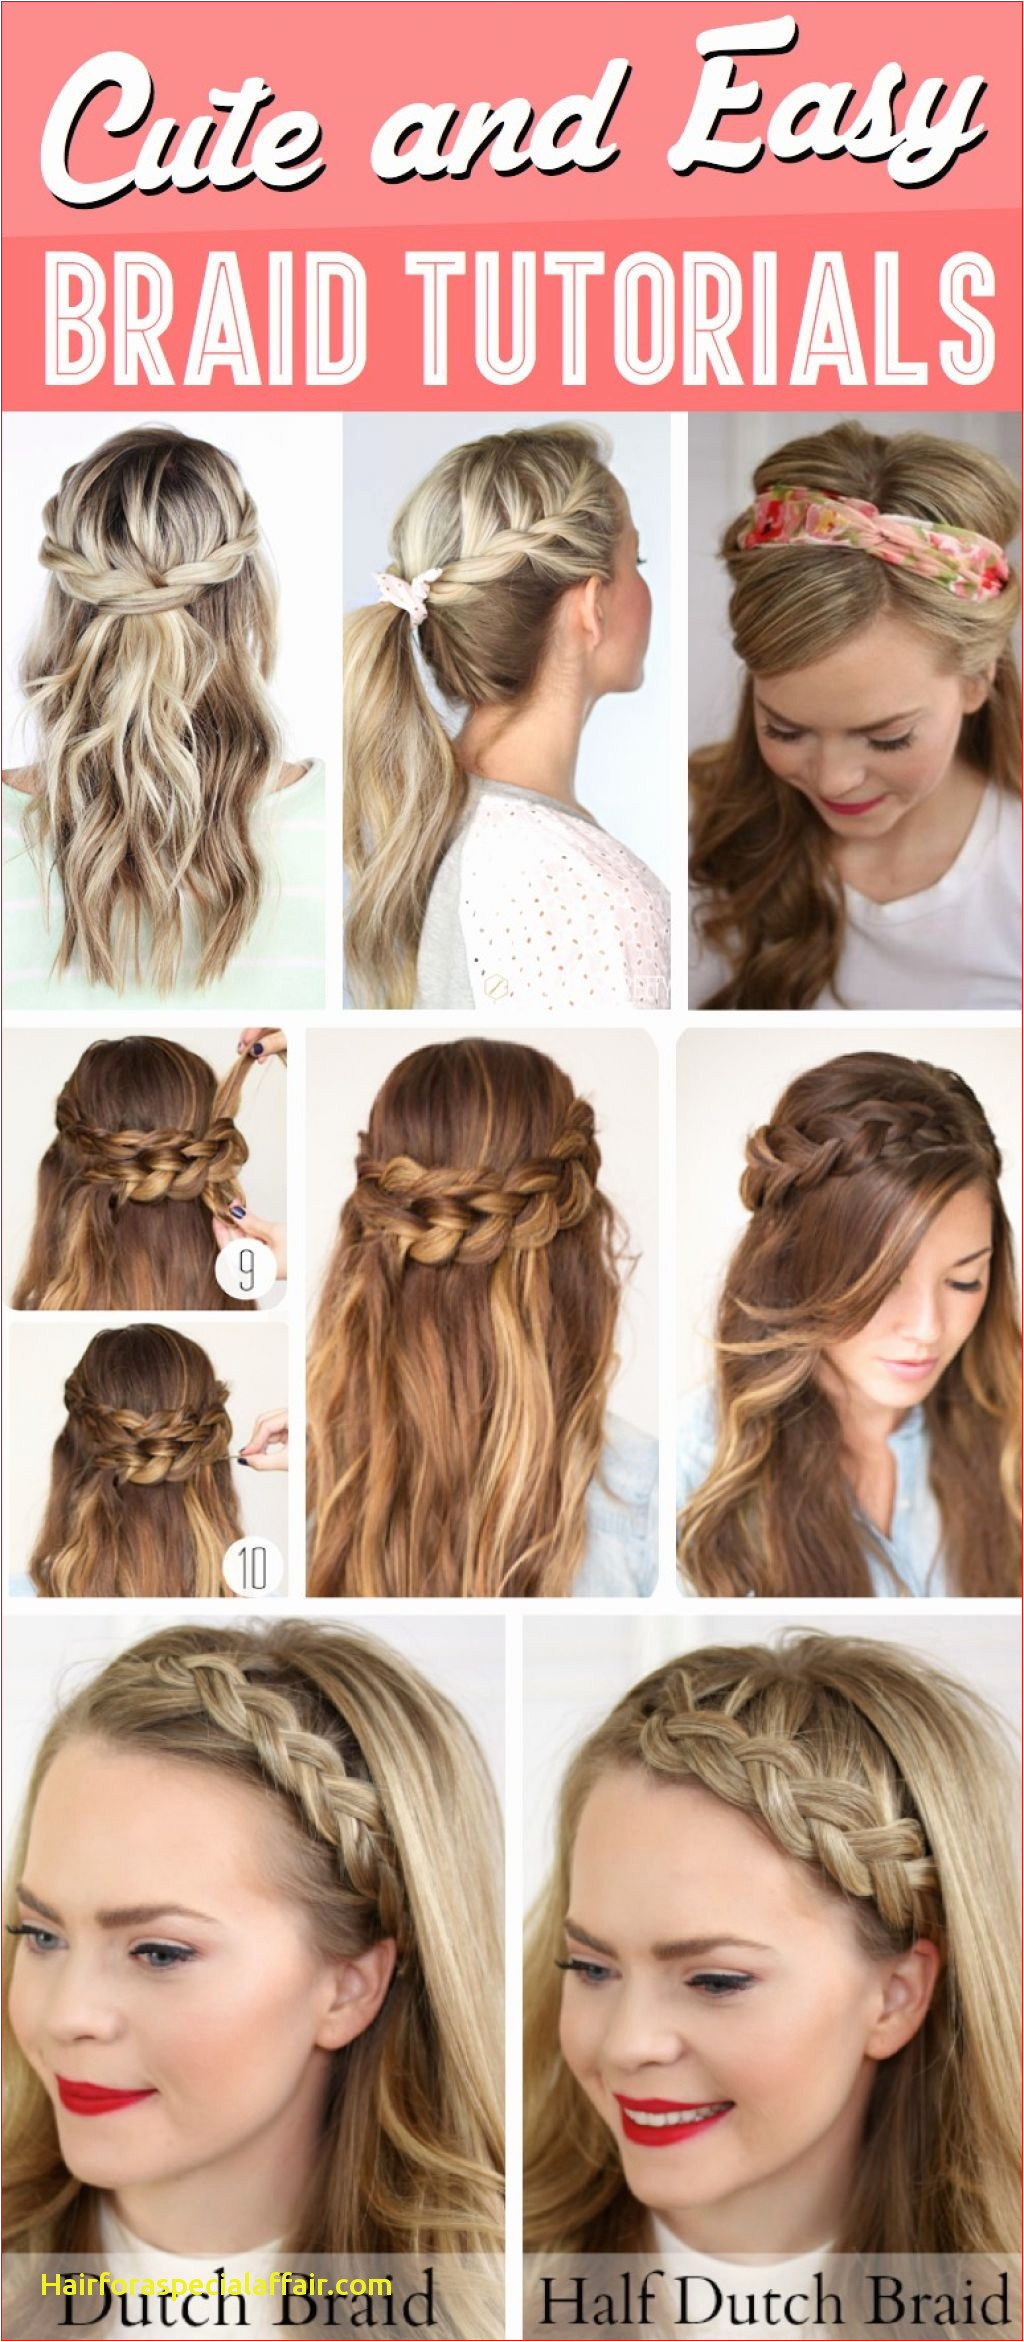 Really Cute Hairstyles for Long Hair for School Best Cute and Easy Hairstyles for School